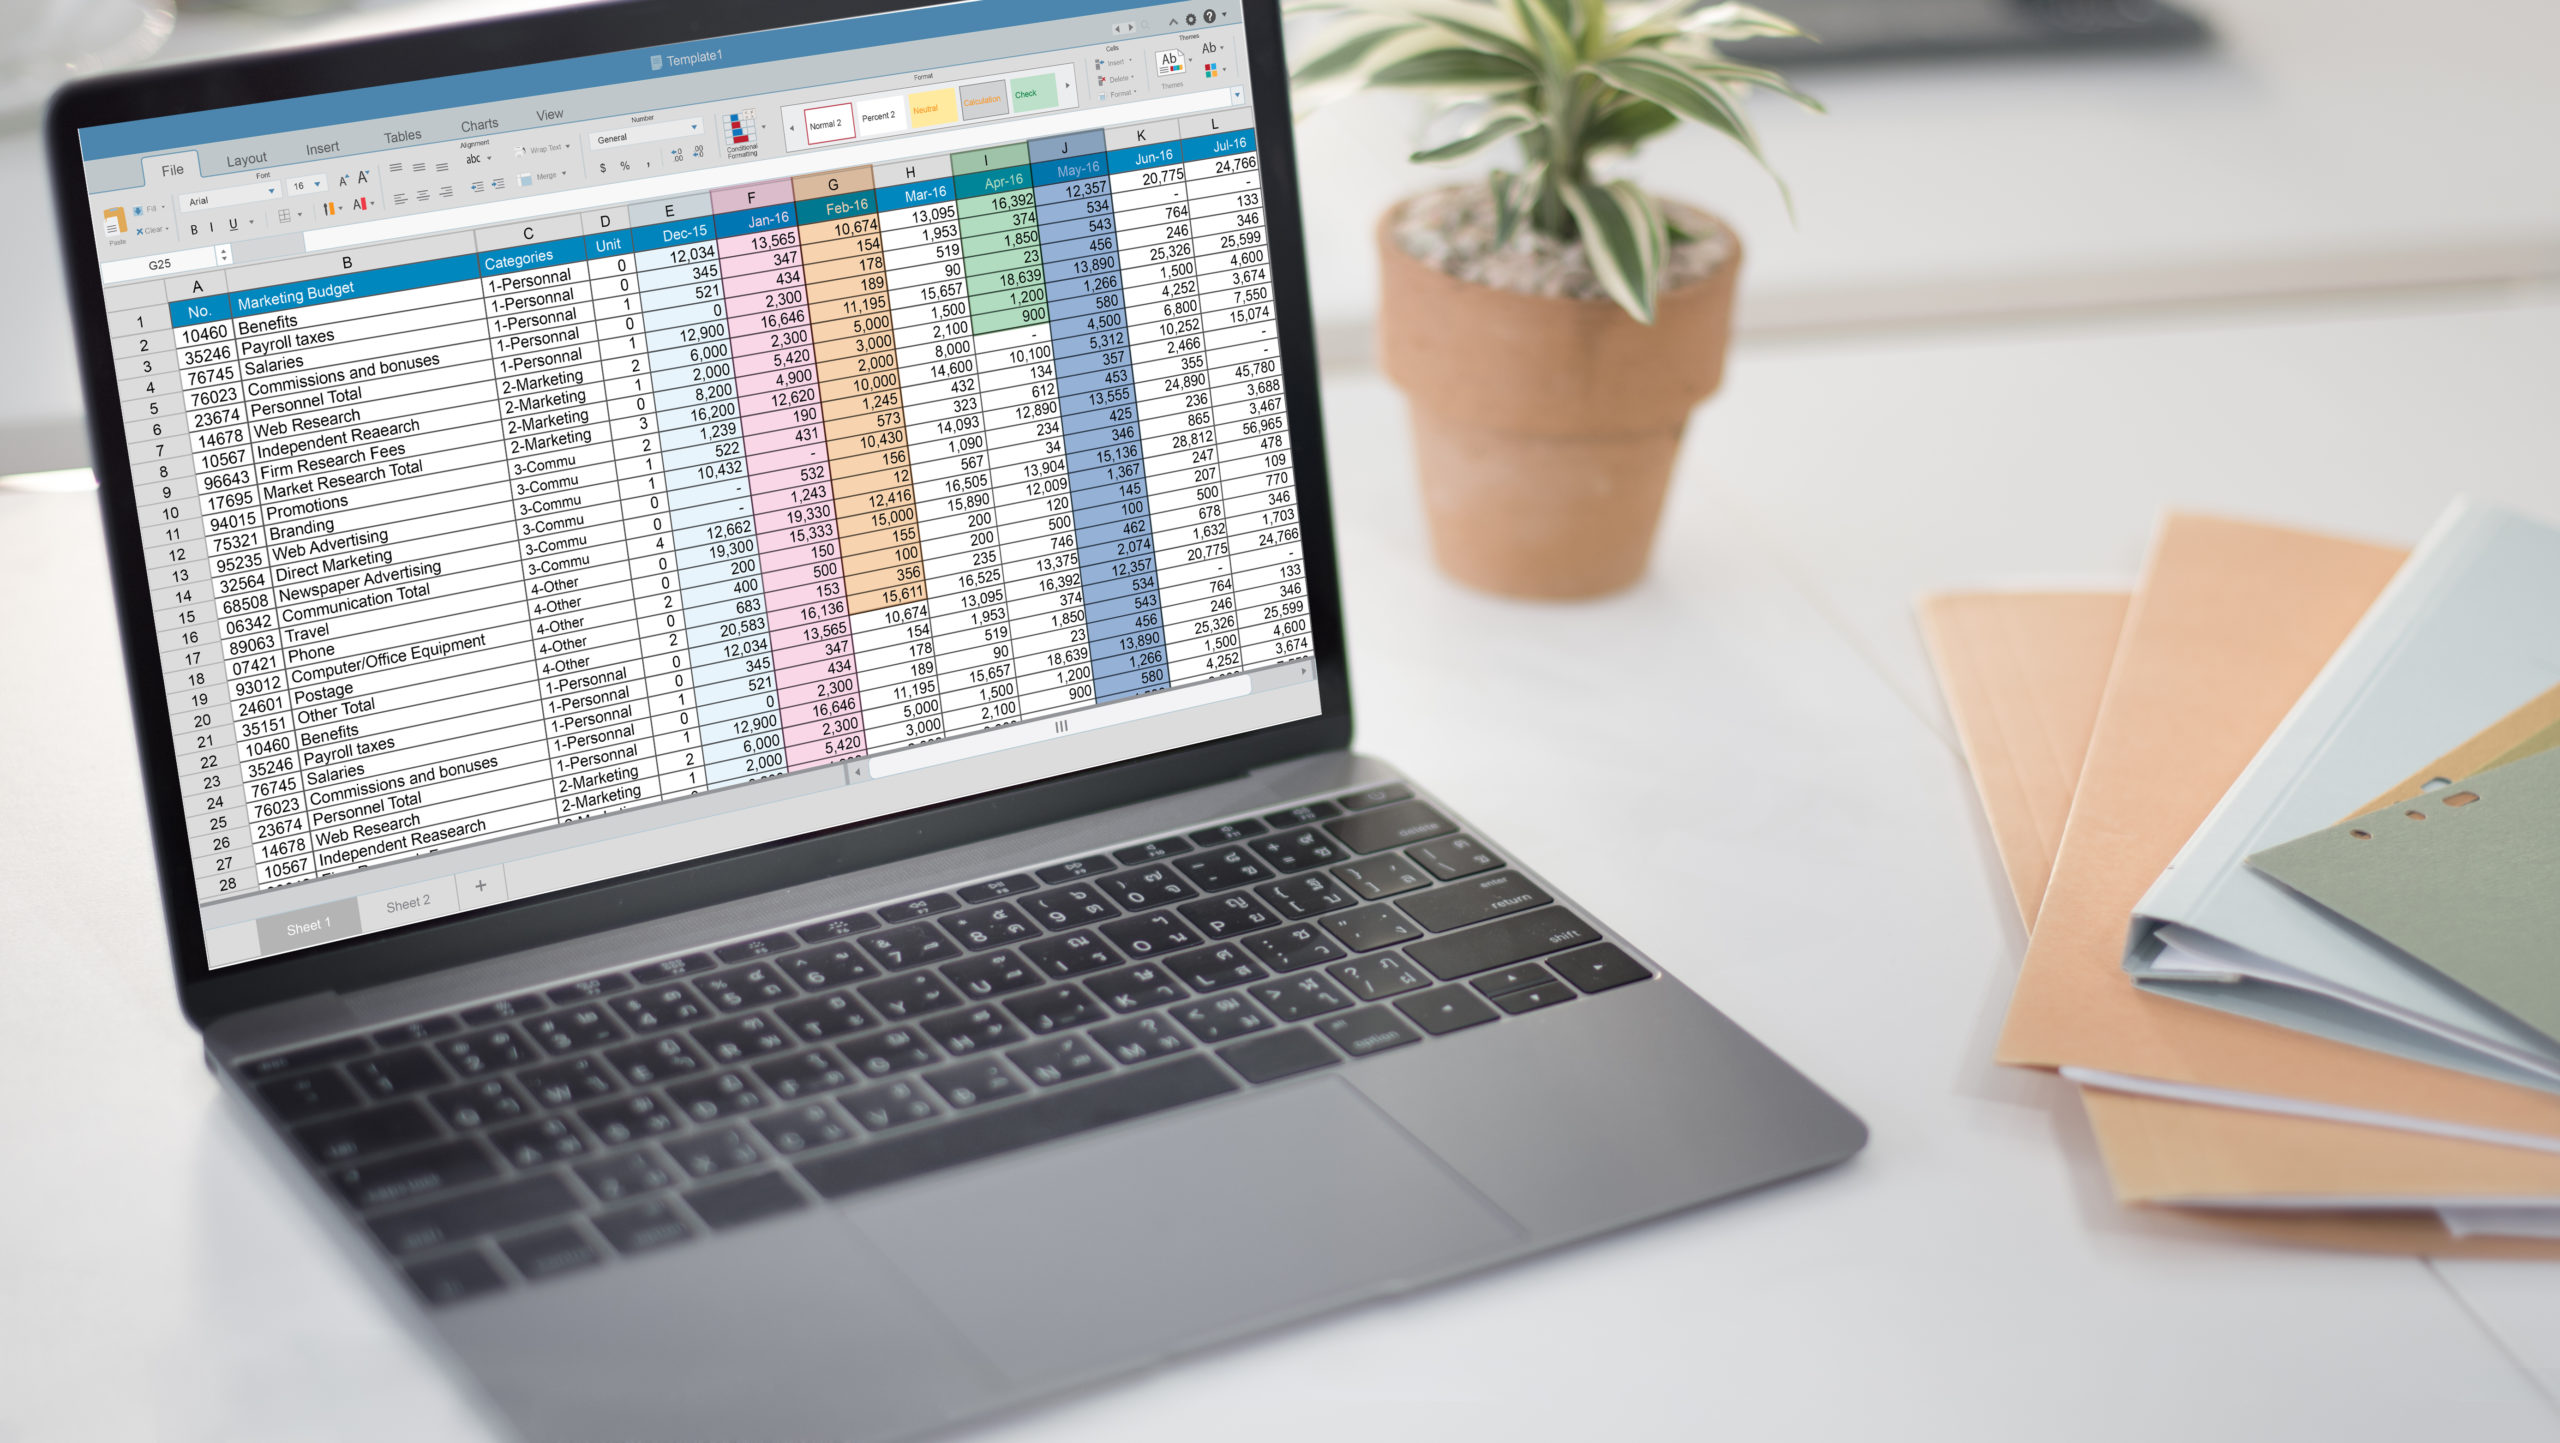 Best Laptop for Large Spreadsheets